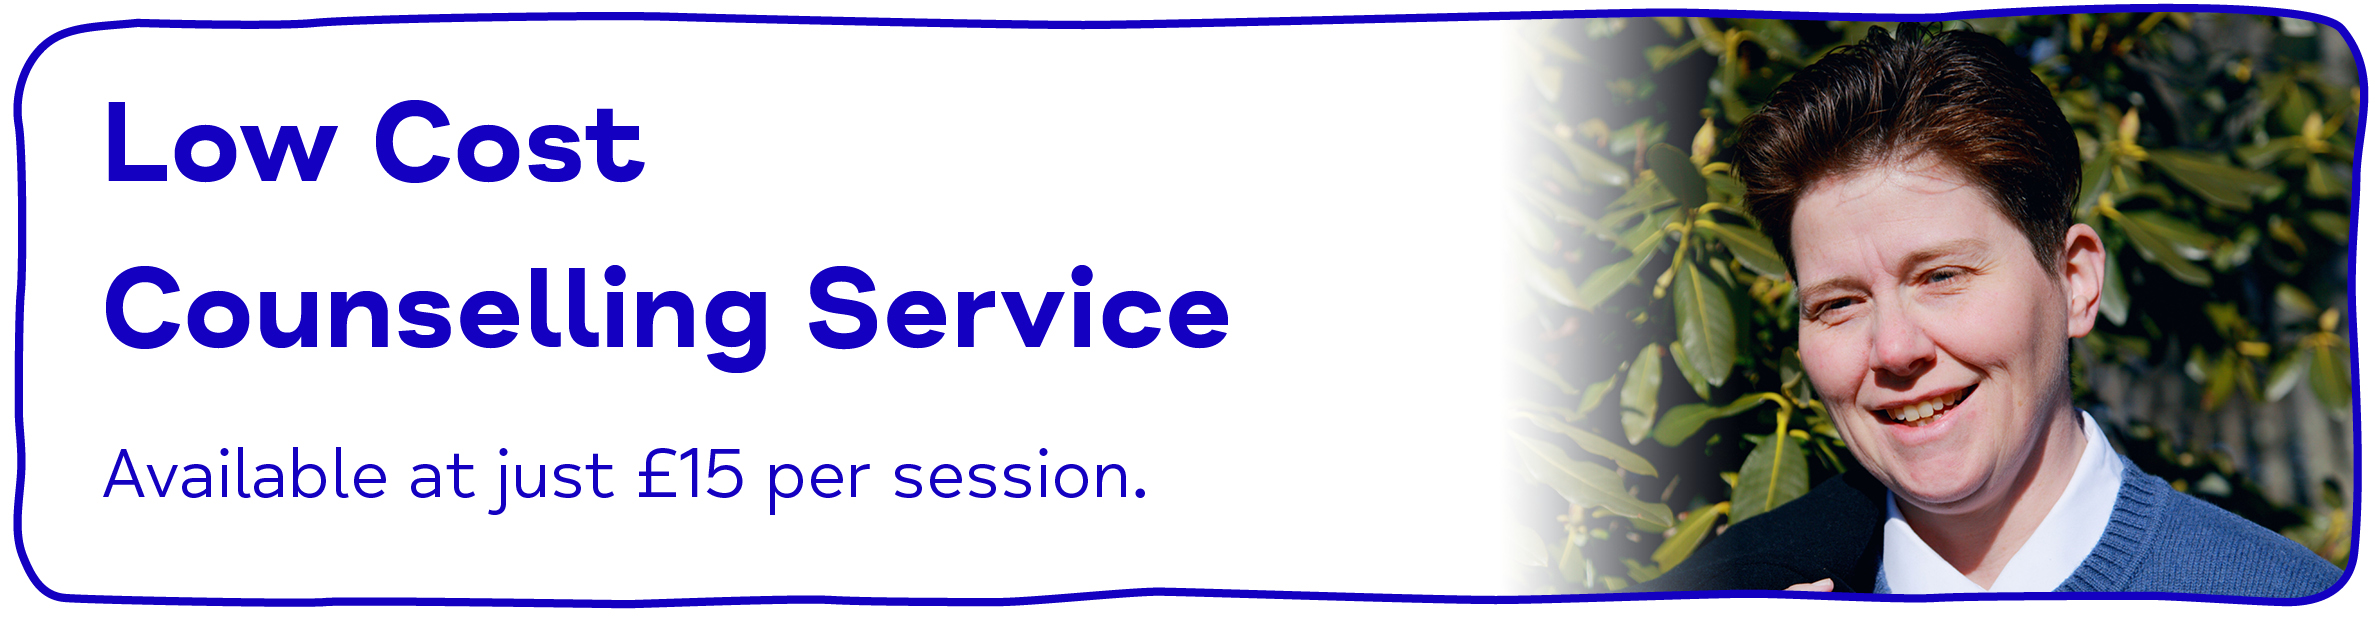 Low Cost Counselling Service from Mid Kent Mind. Available at just £15 per session.